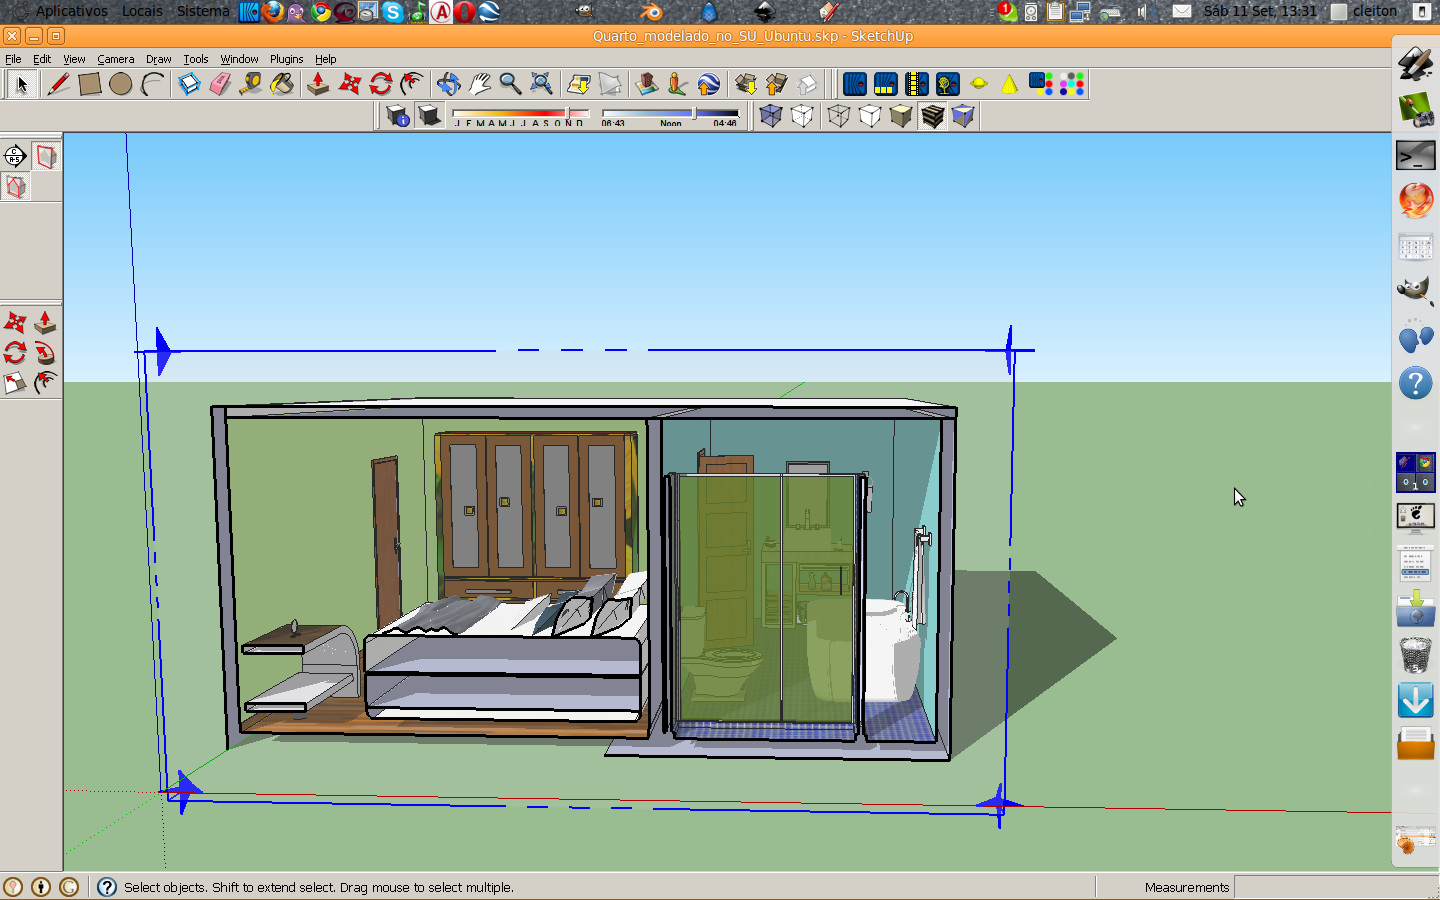 Modelado No Sketchup Via Wine